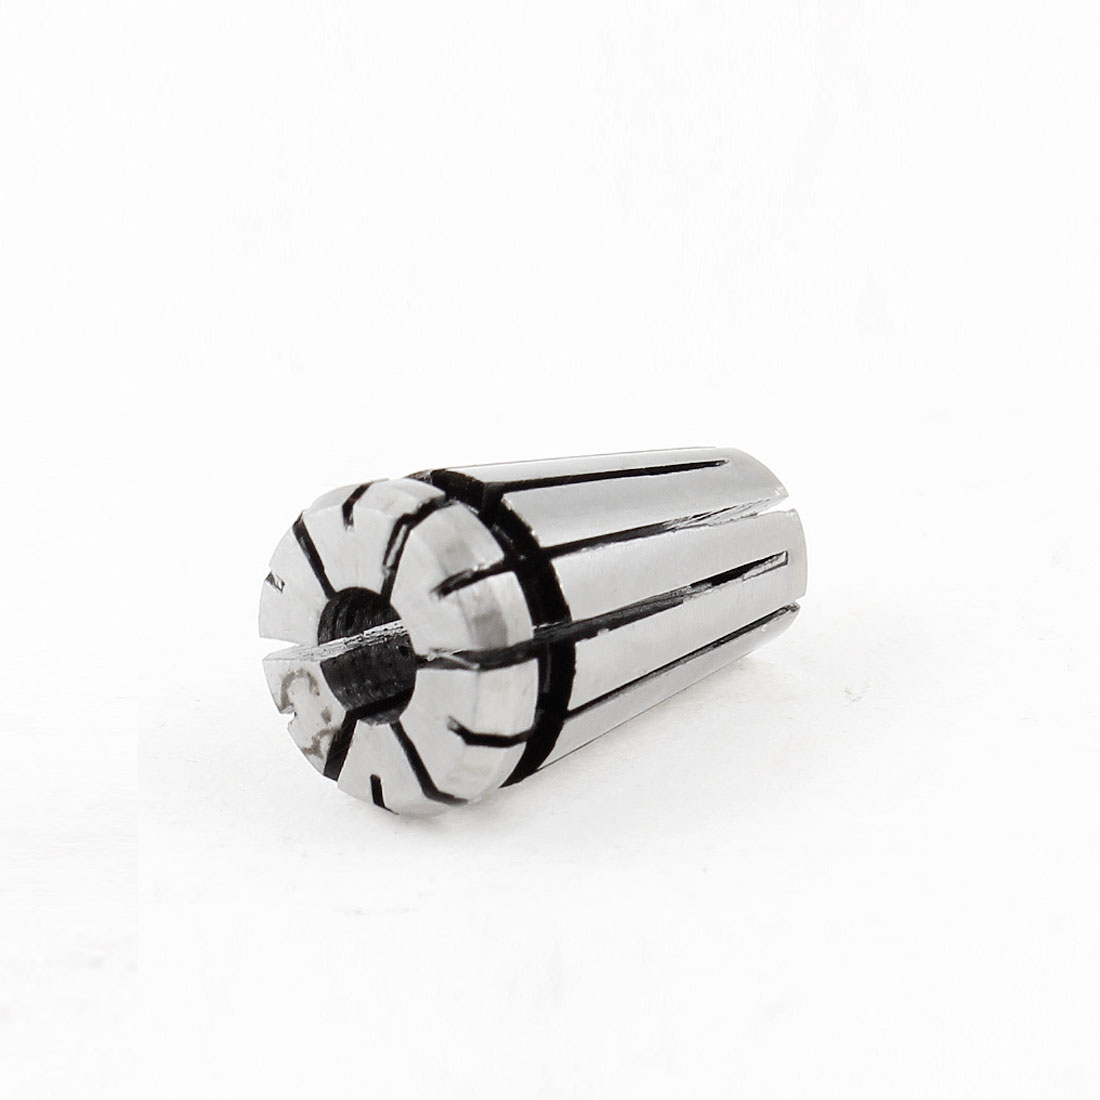 Clamping Range 3.5mm ER8 Precision Spring Collet Reaming Part